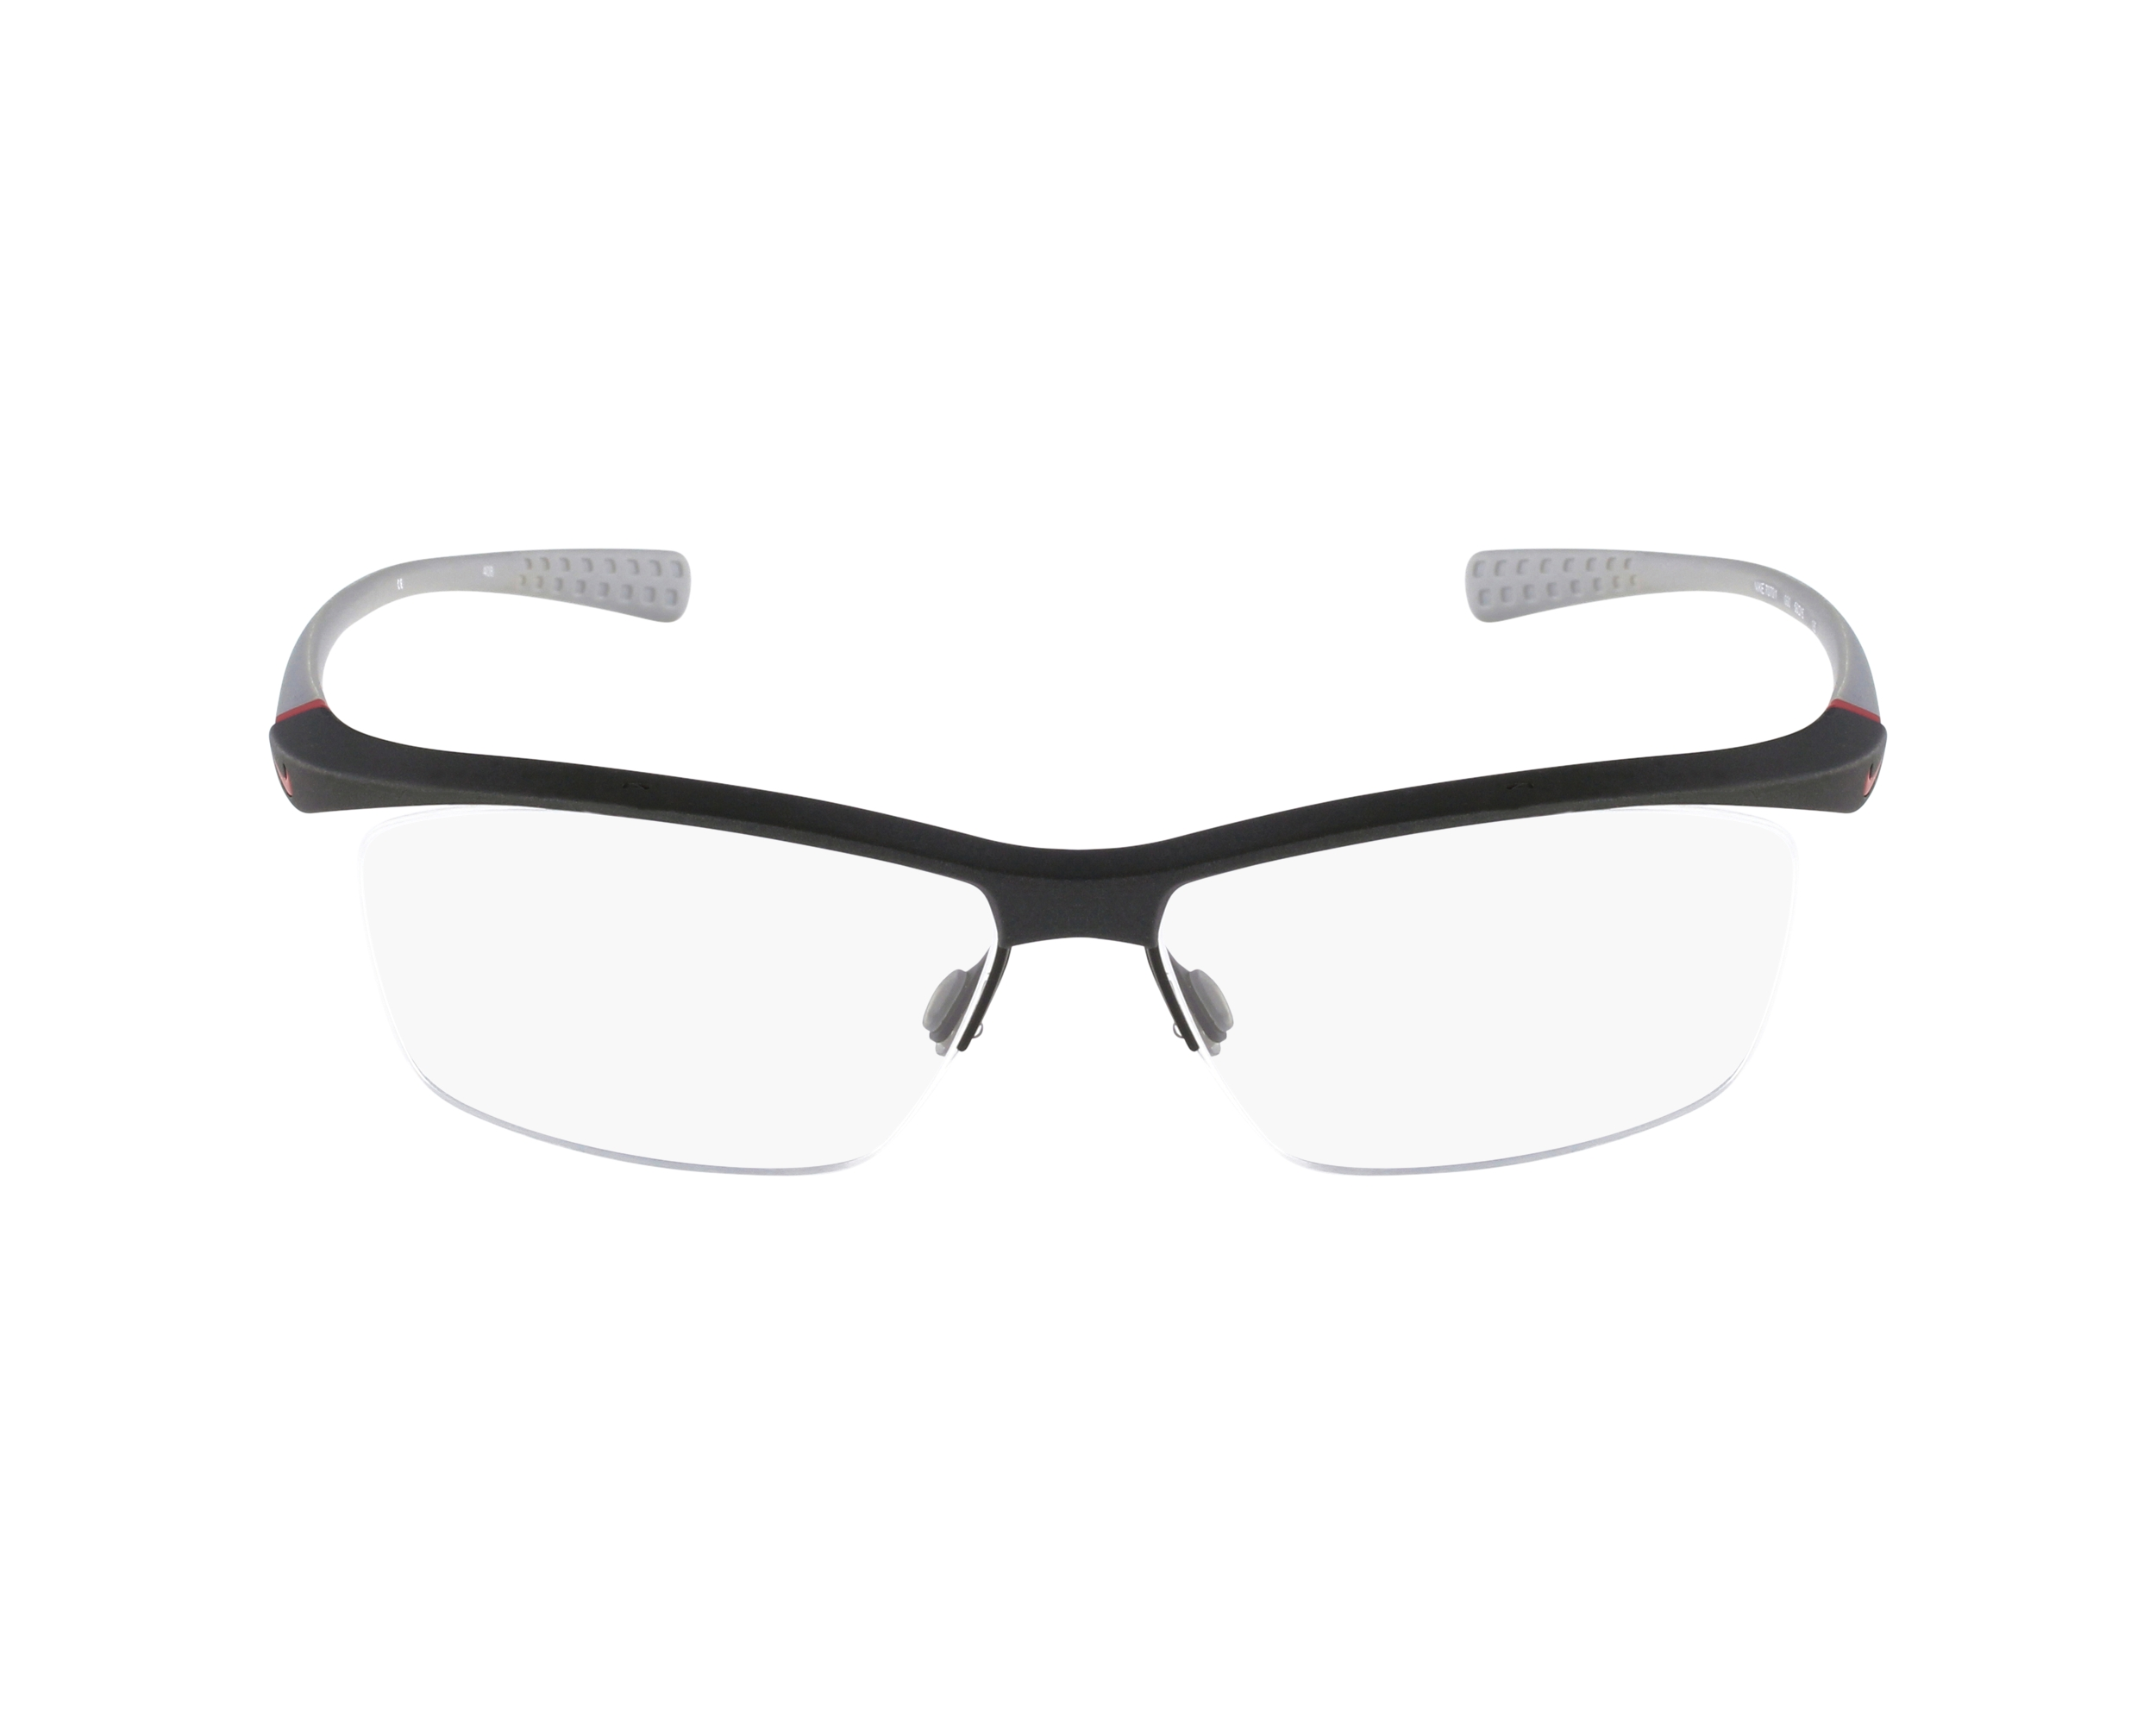 16c9107c3e eyeglasses Nike 7070-1 060 - Grey Grey profile view